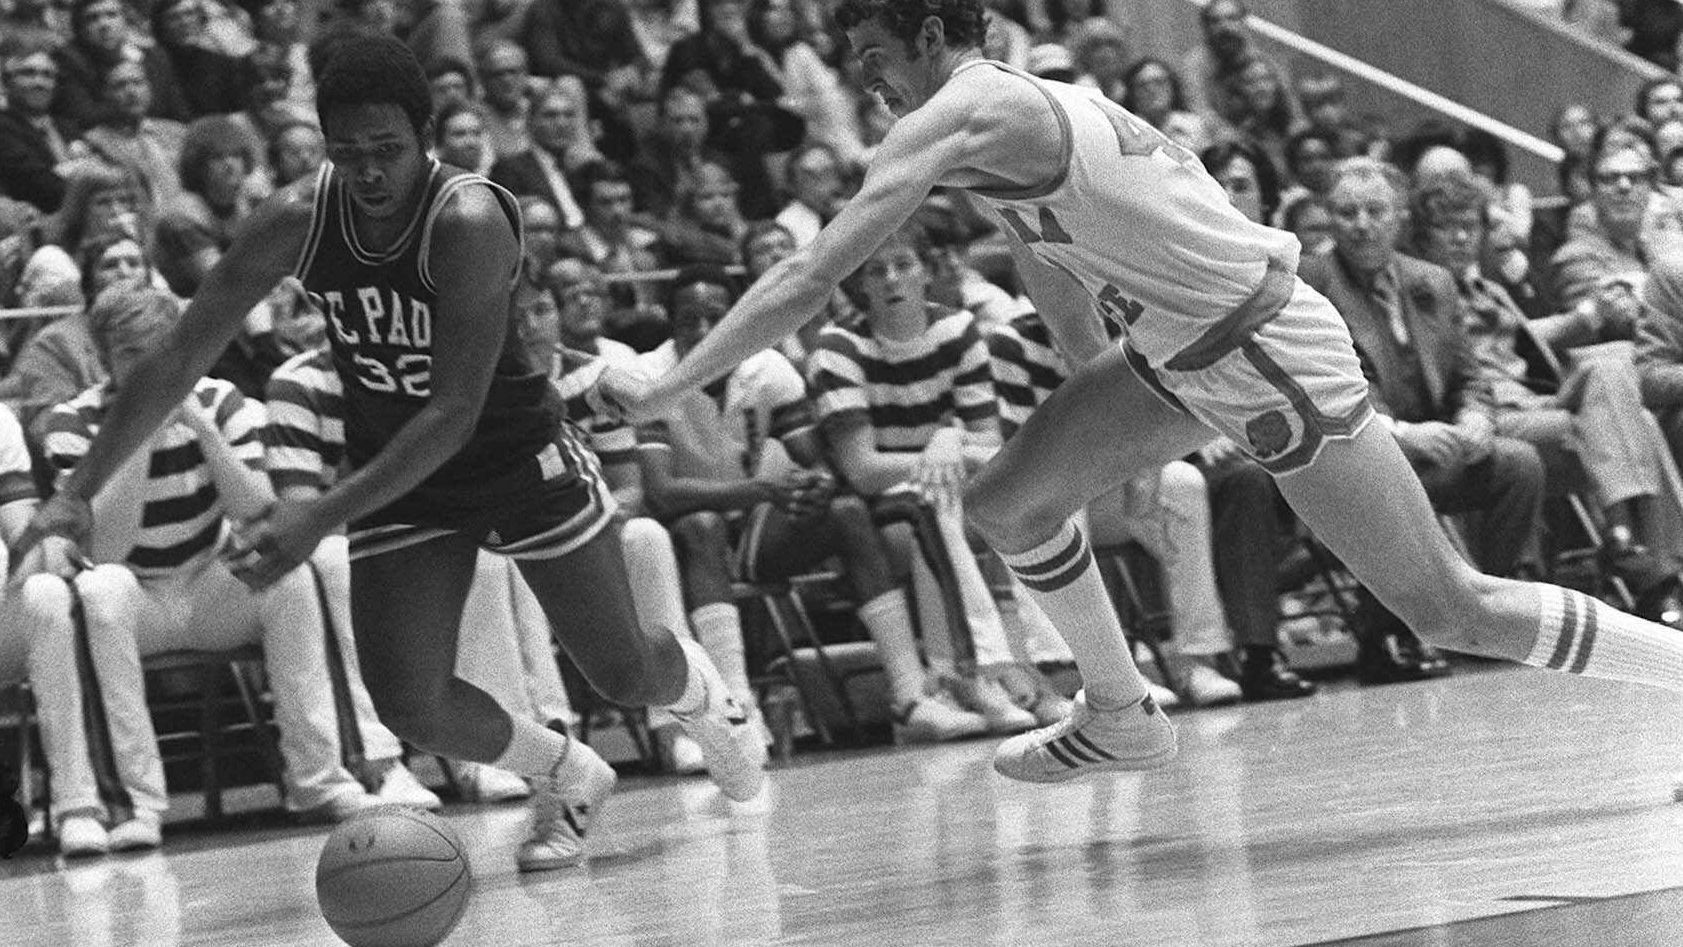 It was Magic vs. Bird in the Final Four 40 years ago, but do you remember Mark Aguirre and DePaul?